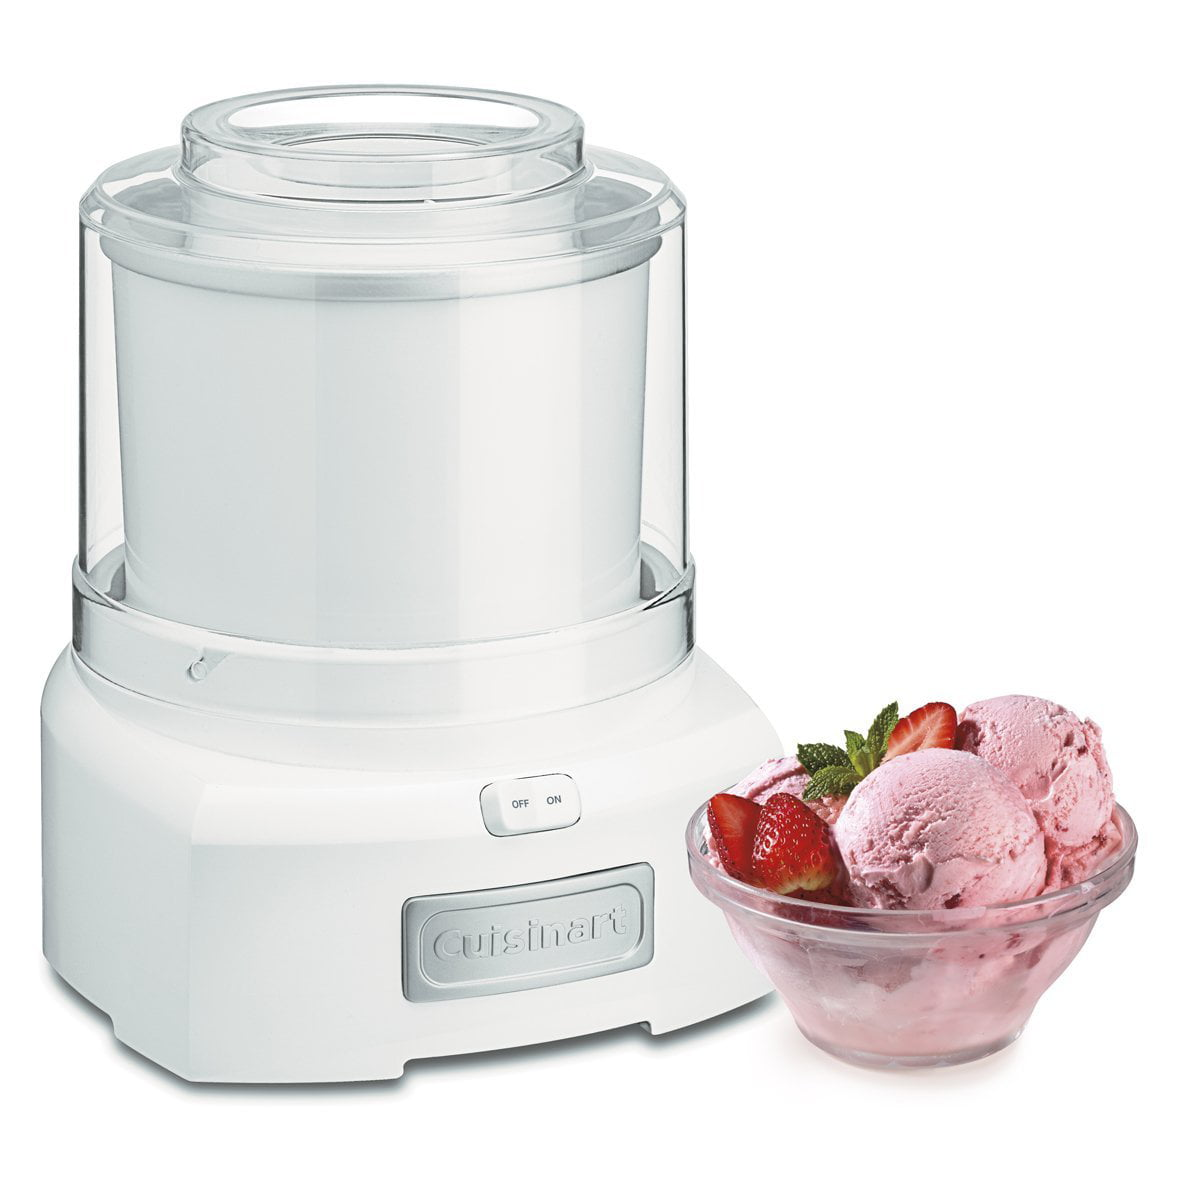 Cuisinart Ice 21 15 Quart Frozen Yogurt Ice Cream Maker White